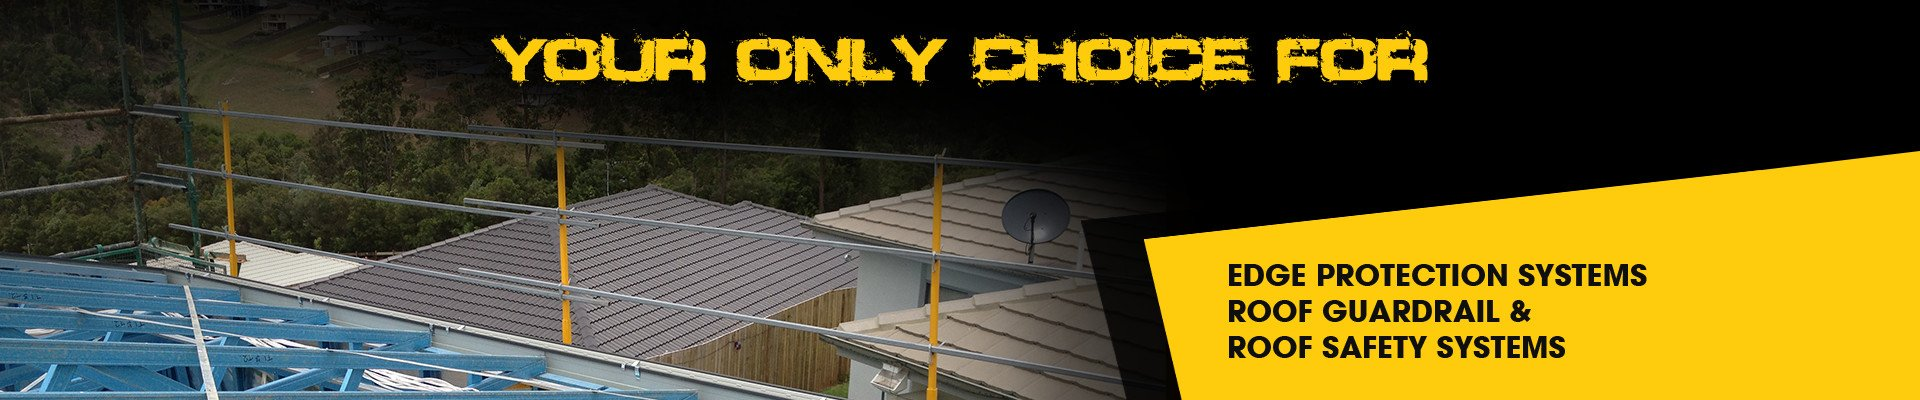 Safer Sites - Your Only Choice For Edge Protection Systems